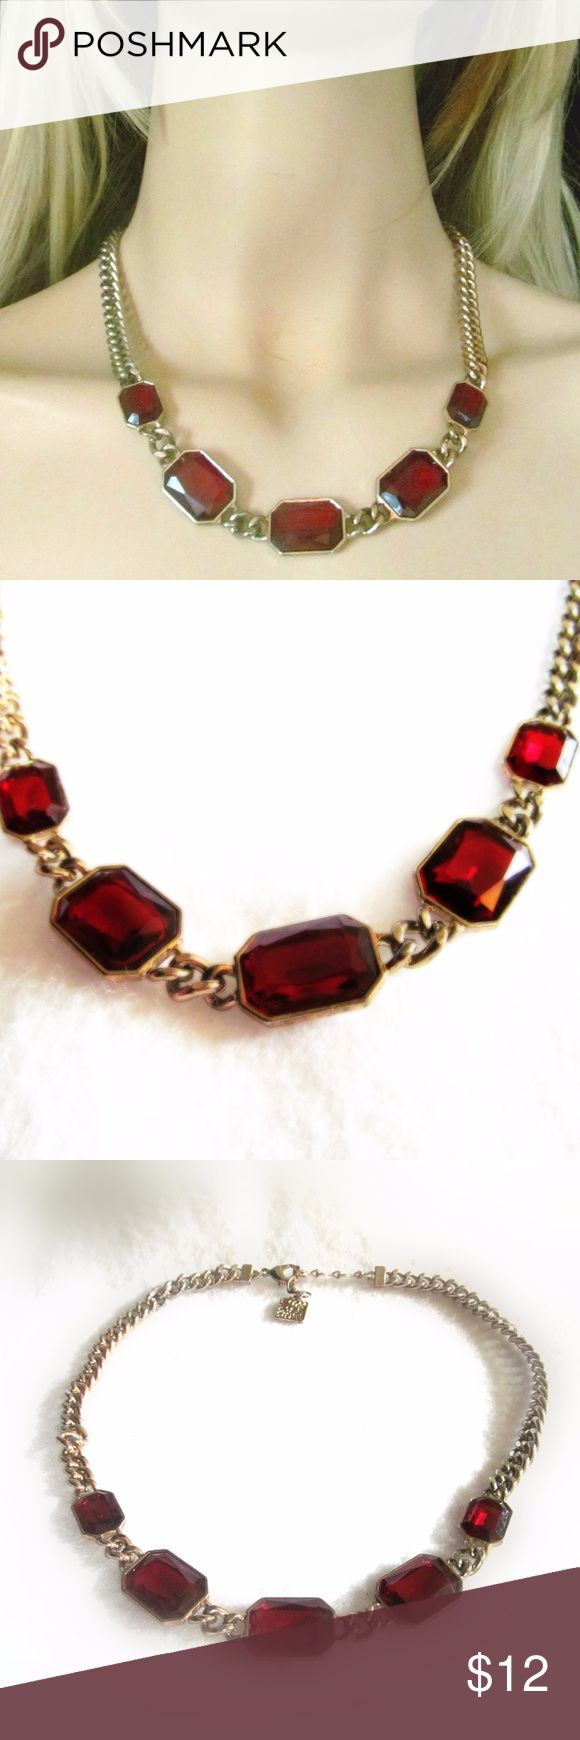 """Vintage Anne Klein Red Rhinestone Chain Necklace Vintage Anne Klein Red Rhineston Chain Necklace Measures approx. 19"""" in length, fully adjustable to whatever length you desire. Condition: Good vintage. Anne Klein Jewelry Necklaces"""